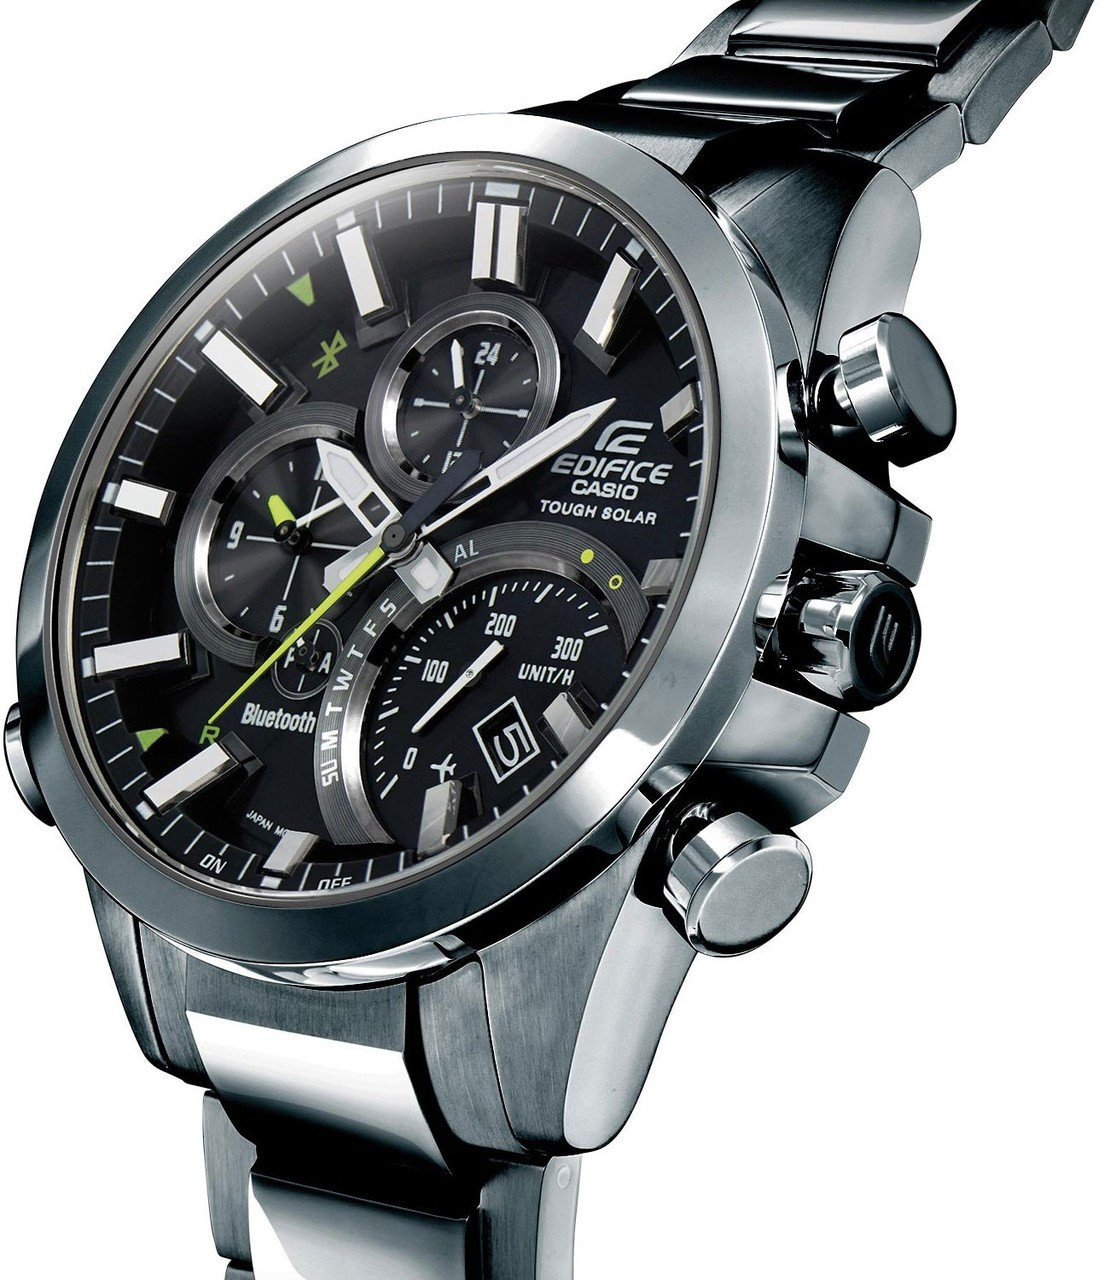 Watch Review - Casio Edifice Bluetooth Watch EQB-500D-1A